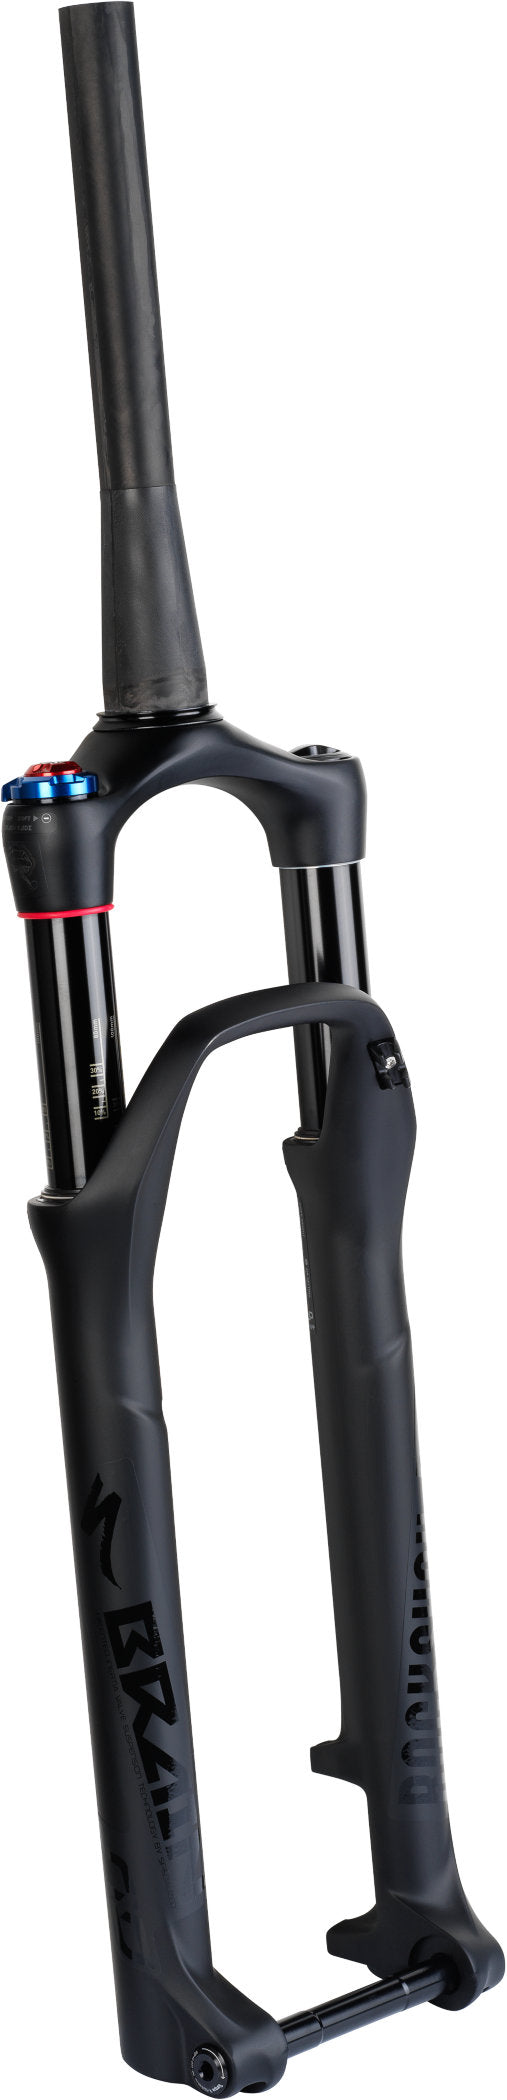 ROCKSHOX SID WC BRAIN PS